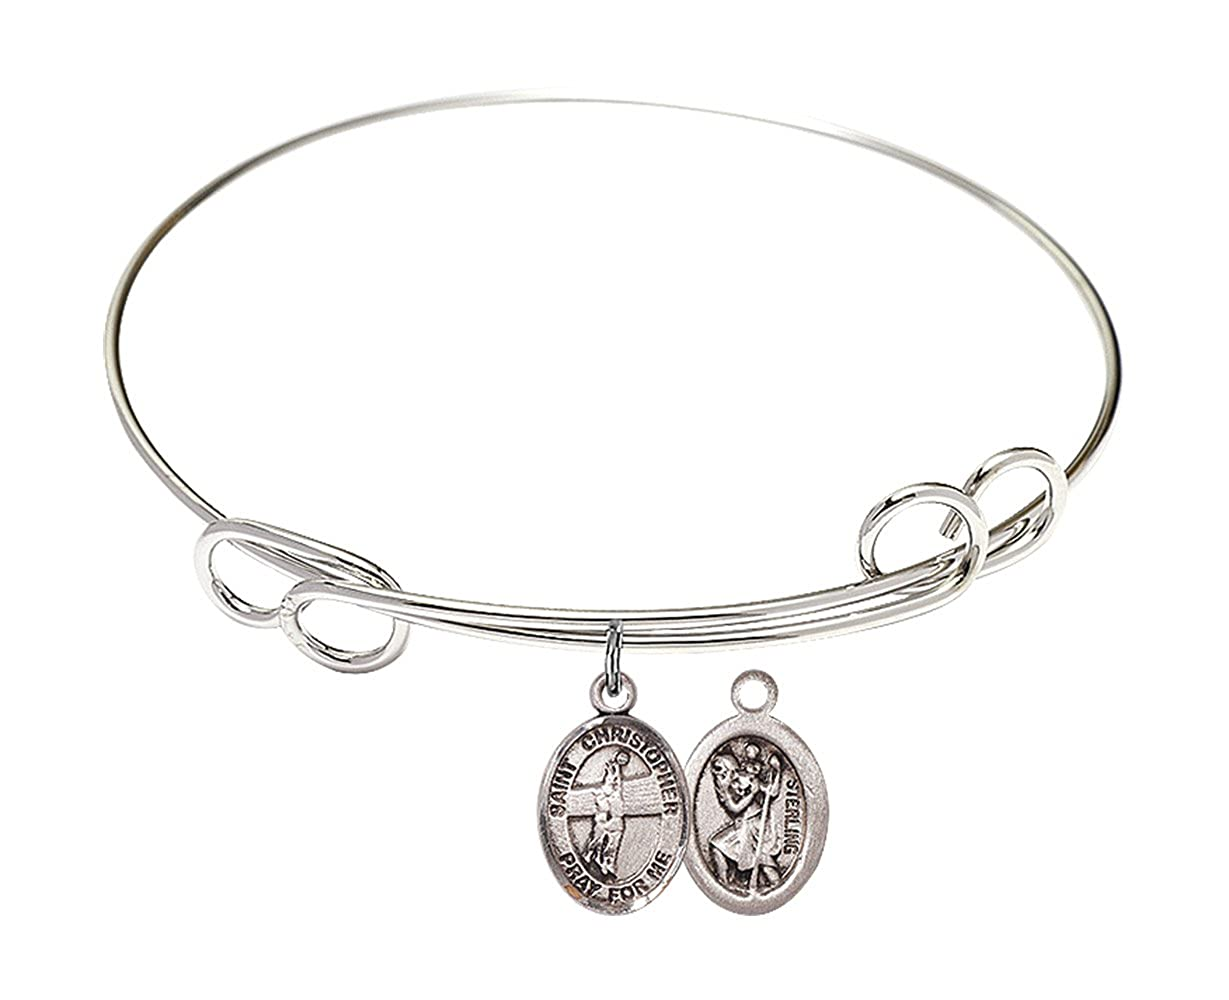 7 1//2 inch Round Double Loop Bangle Bracelet with a St Christopher//Volleyball charm.